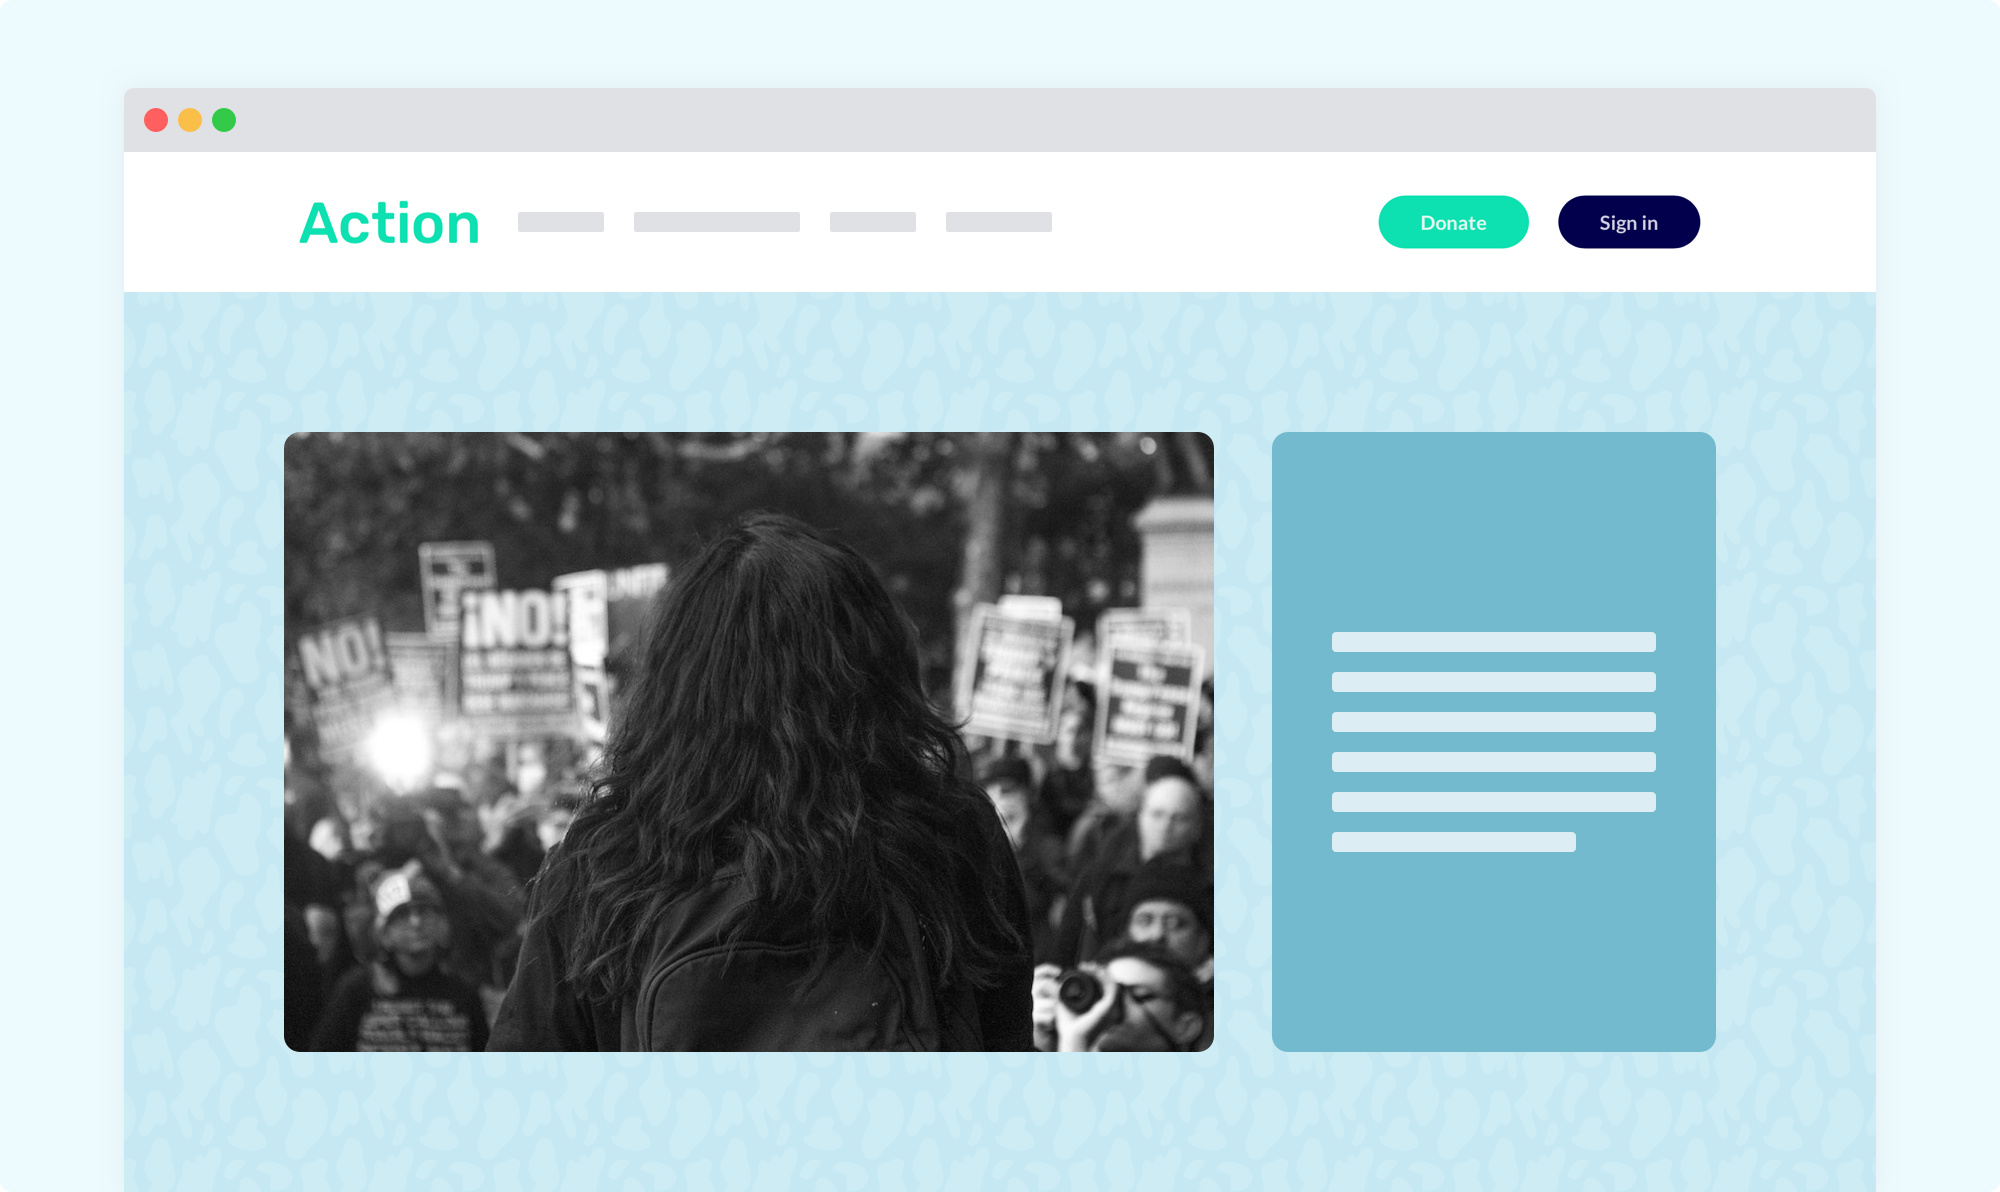 Tell your nonprofit's story with an action-focused website